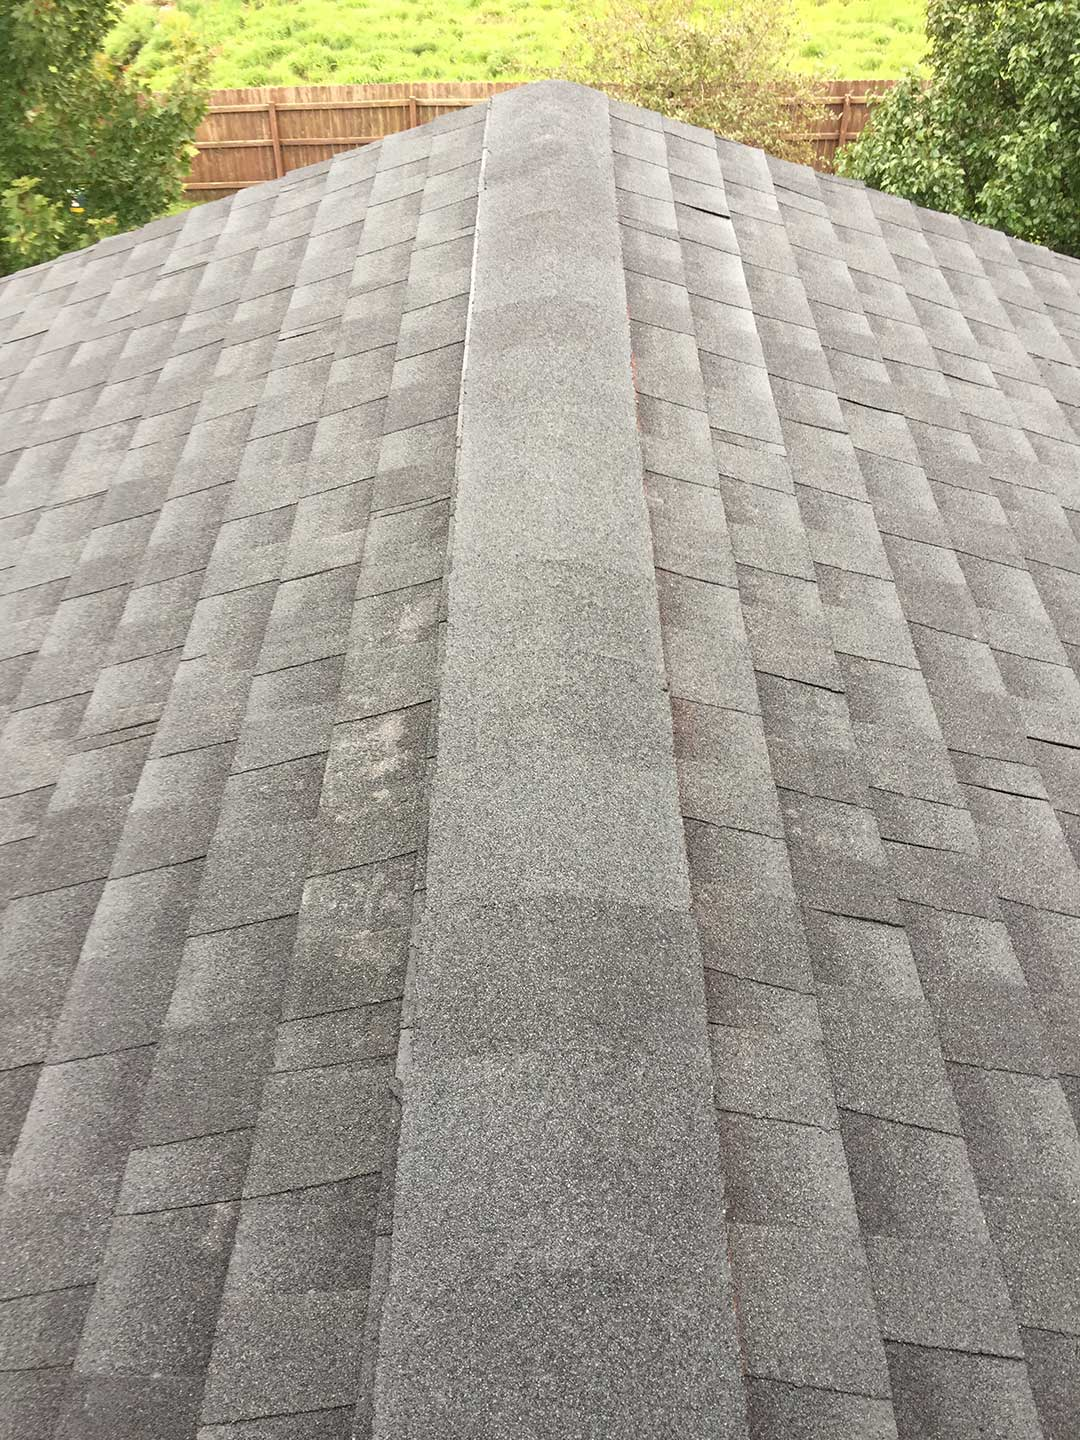 Brian's Urbandale, IA home's roof had been damaged by hail in one of the storms from this summer.